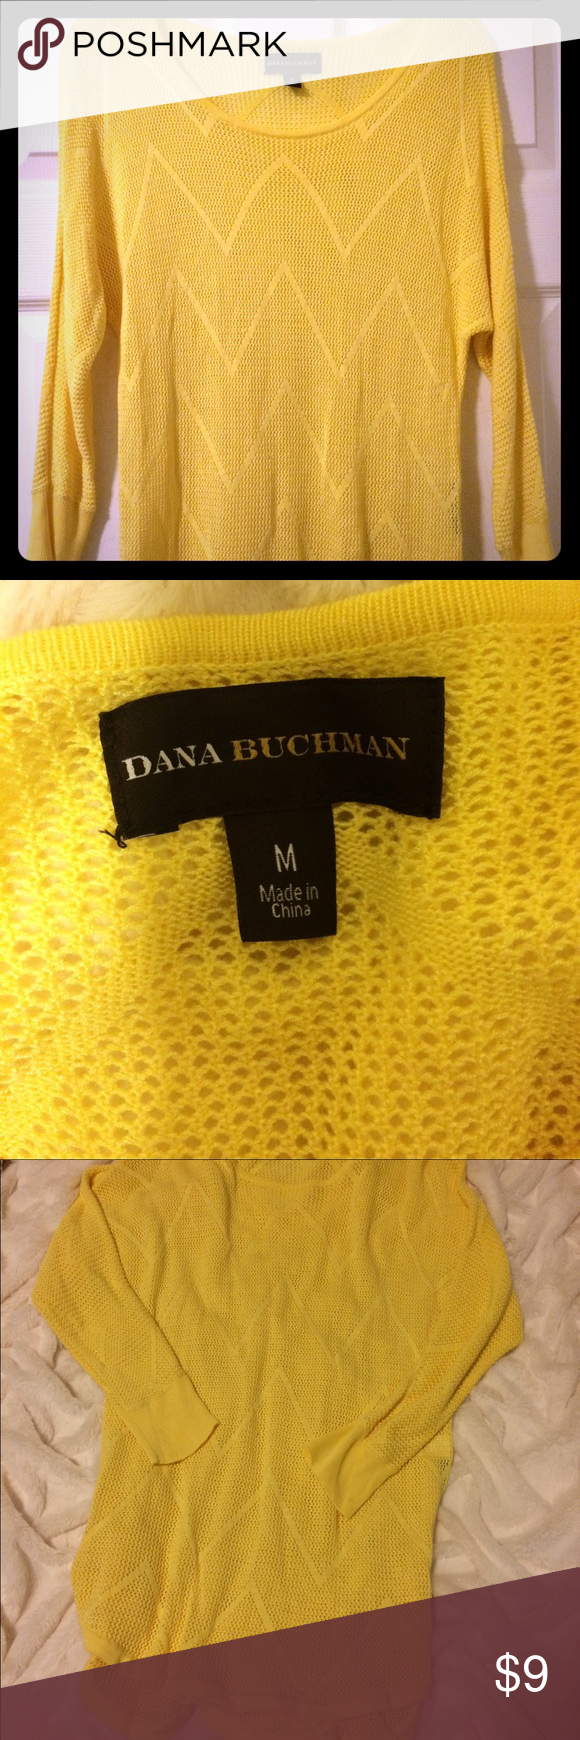 SALE netted Dana Buchman  yellow top Yellow net Dana Buchman long sleeve top. Perfect fit. Flaw in holes on top of one shoulder where hanger got stuck (reflected in price). Hardly noticeable especially if work with hair down or under a jacket. Dana Buchman Tops